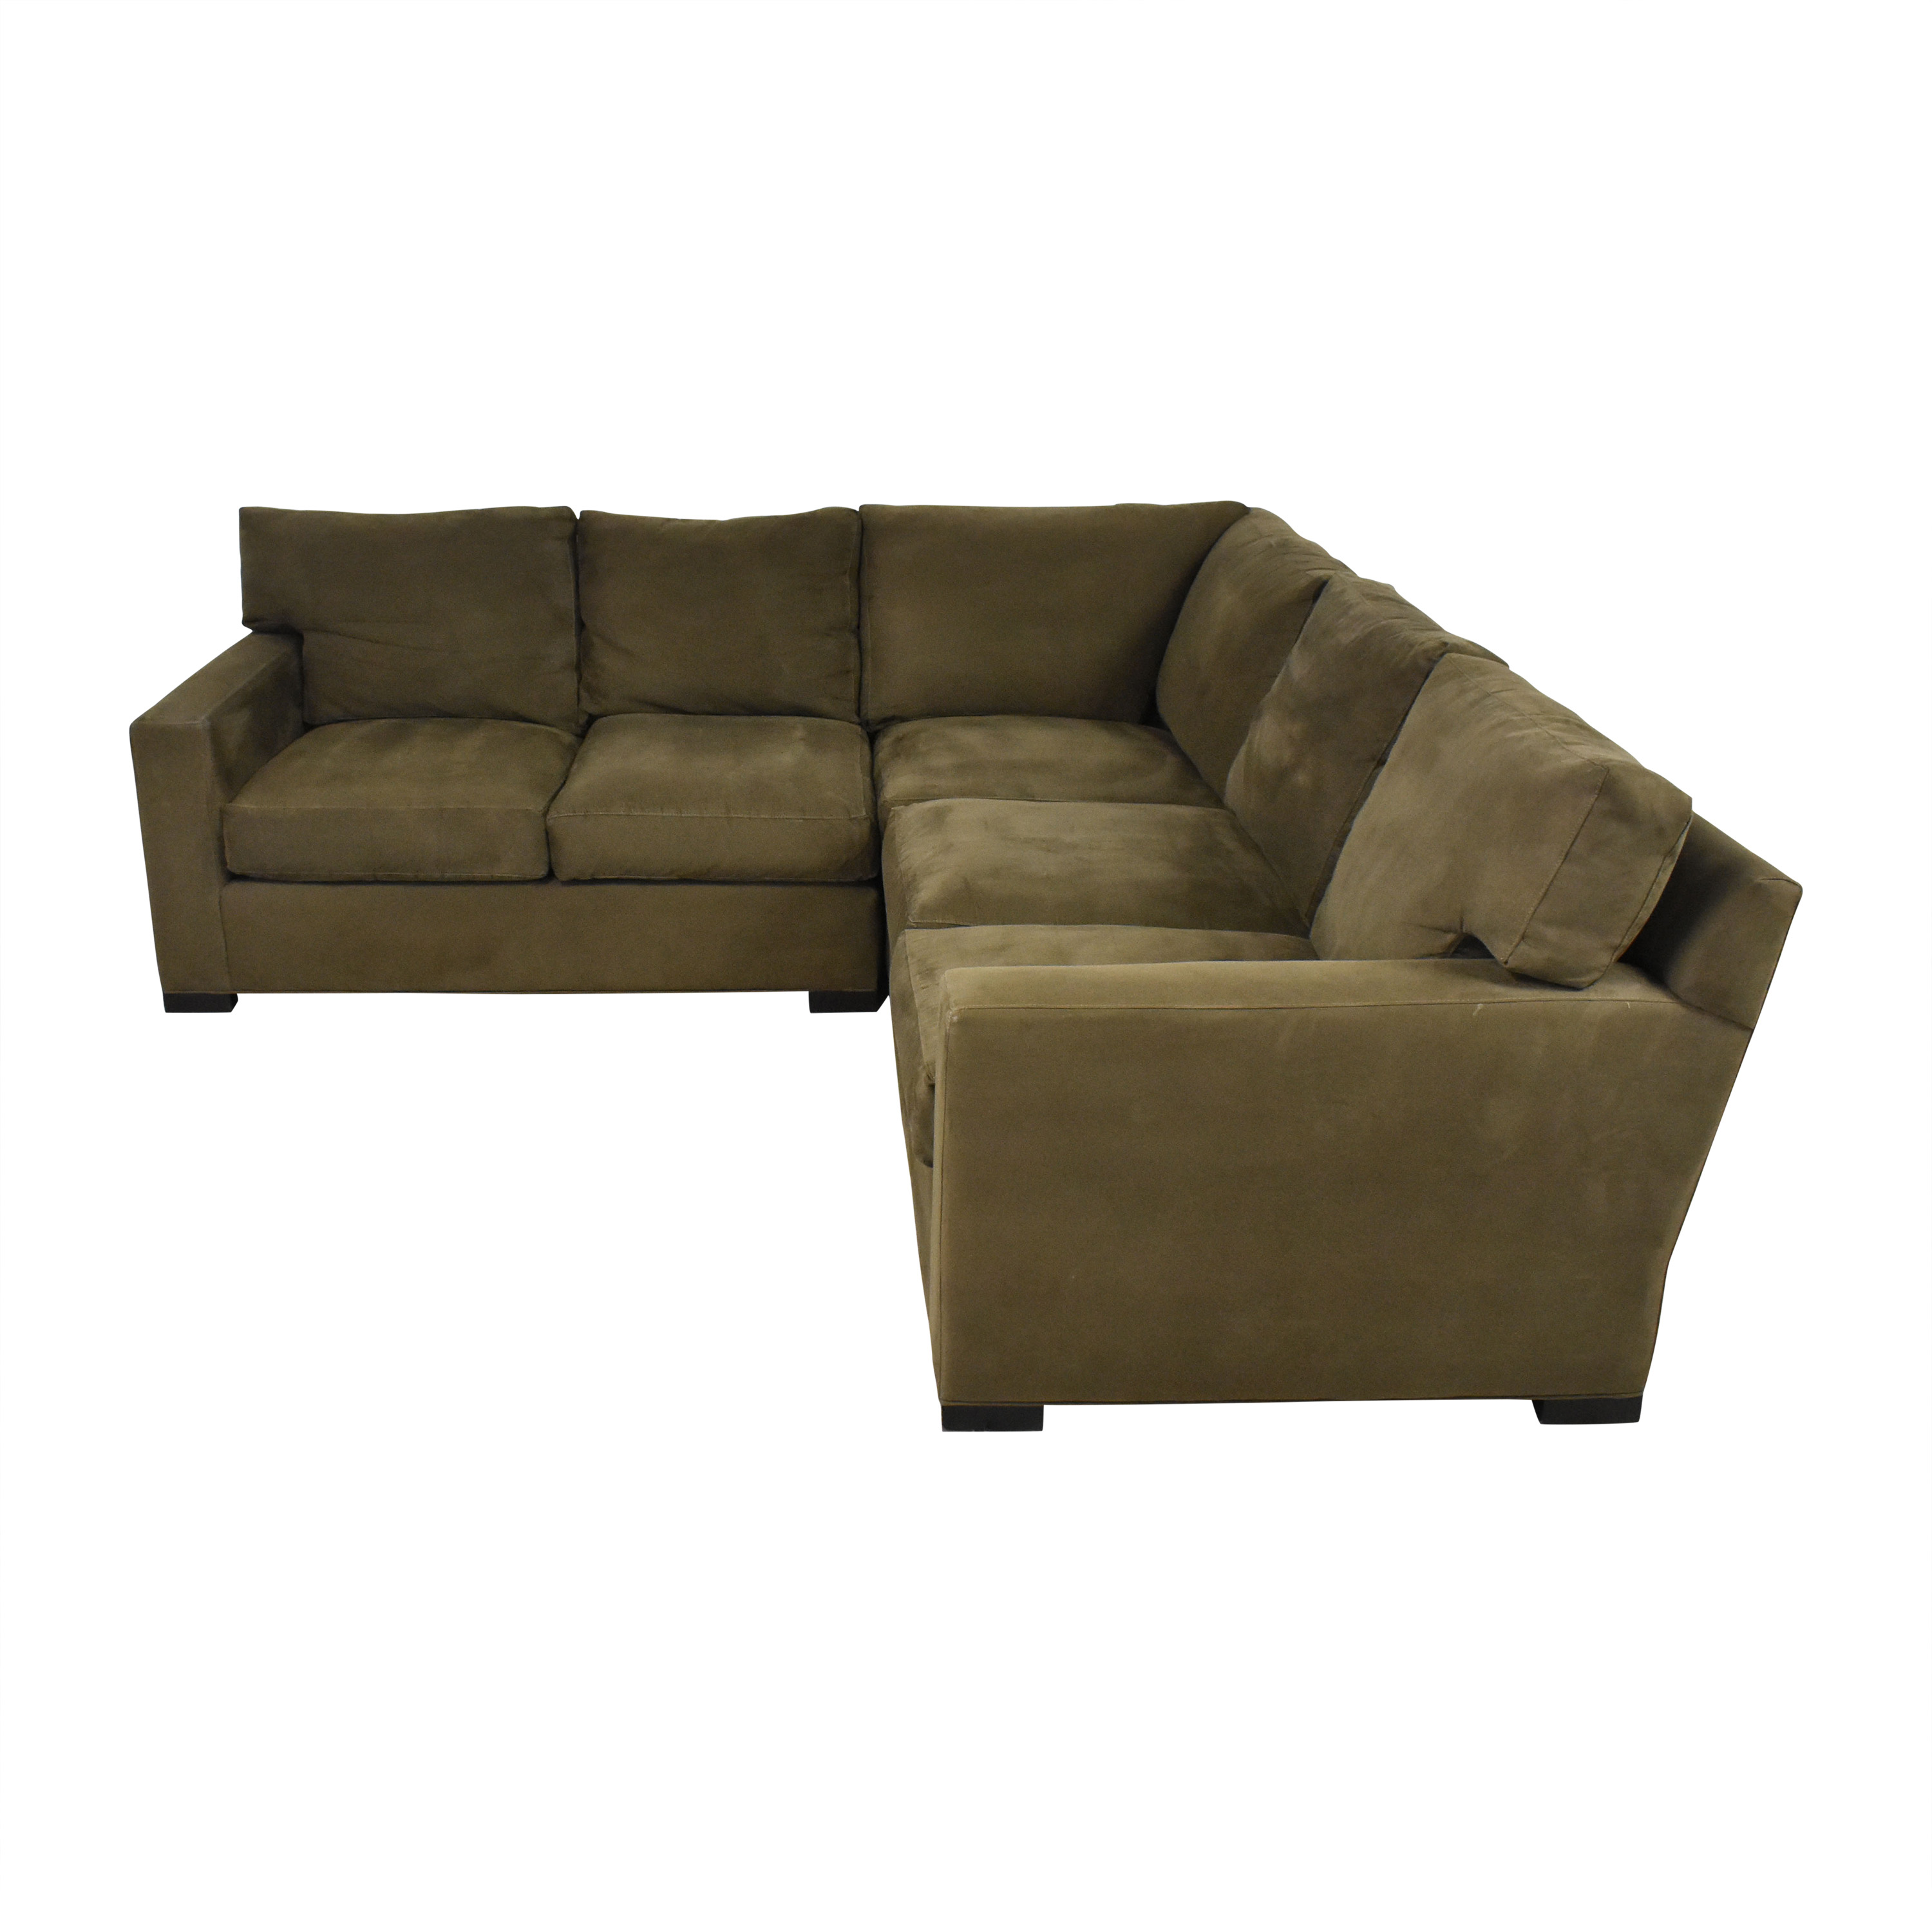 Crate & Barrel Crate & Barrel Axis Three Piece Sectional Sofa Sectionals